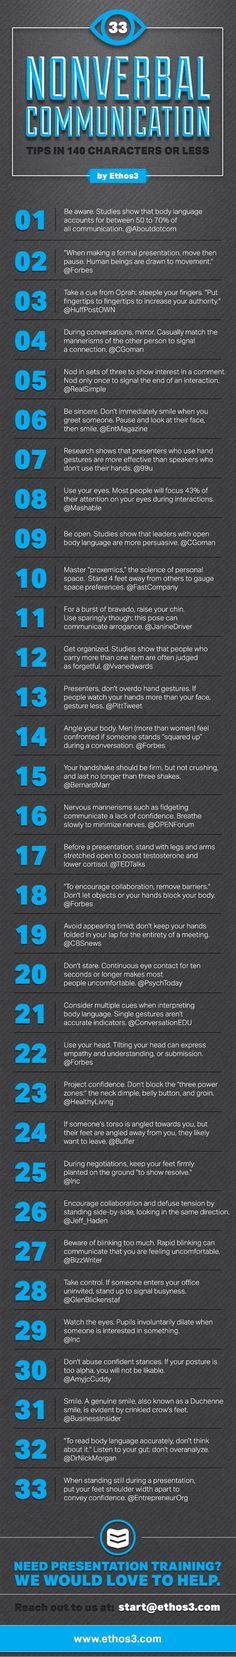 33 Nonverbal Communication Tips, in 140 characters or less